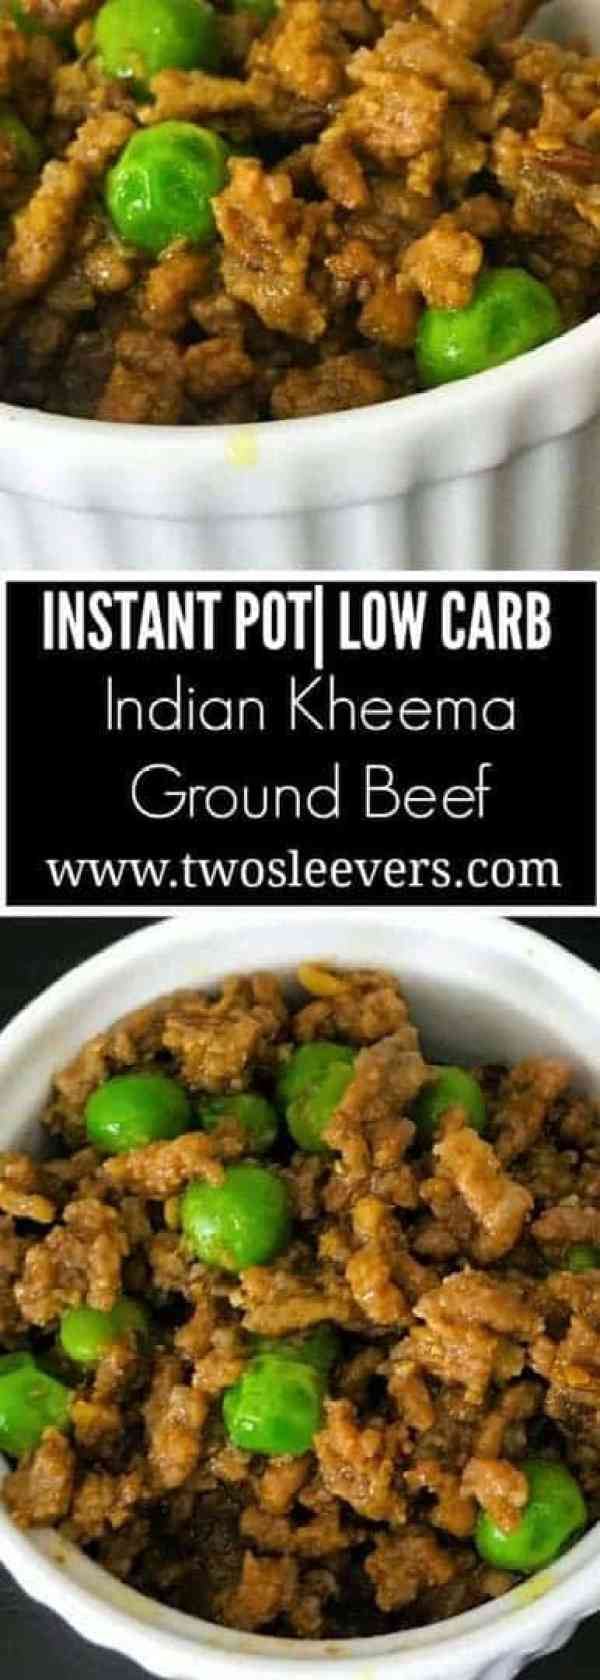 Instant Pot Keto recipe for Indian Kheema |twosleevers.com